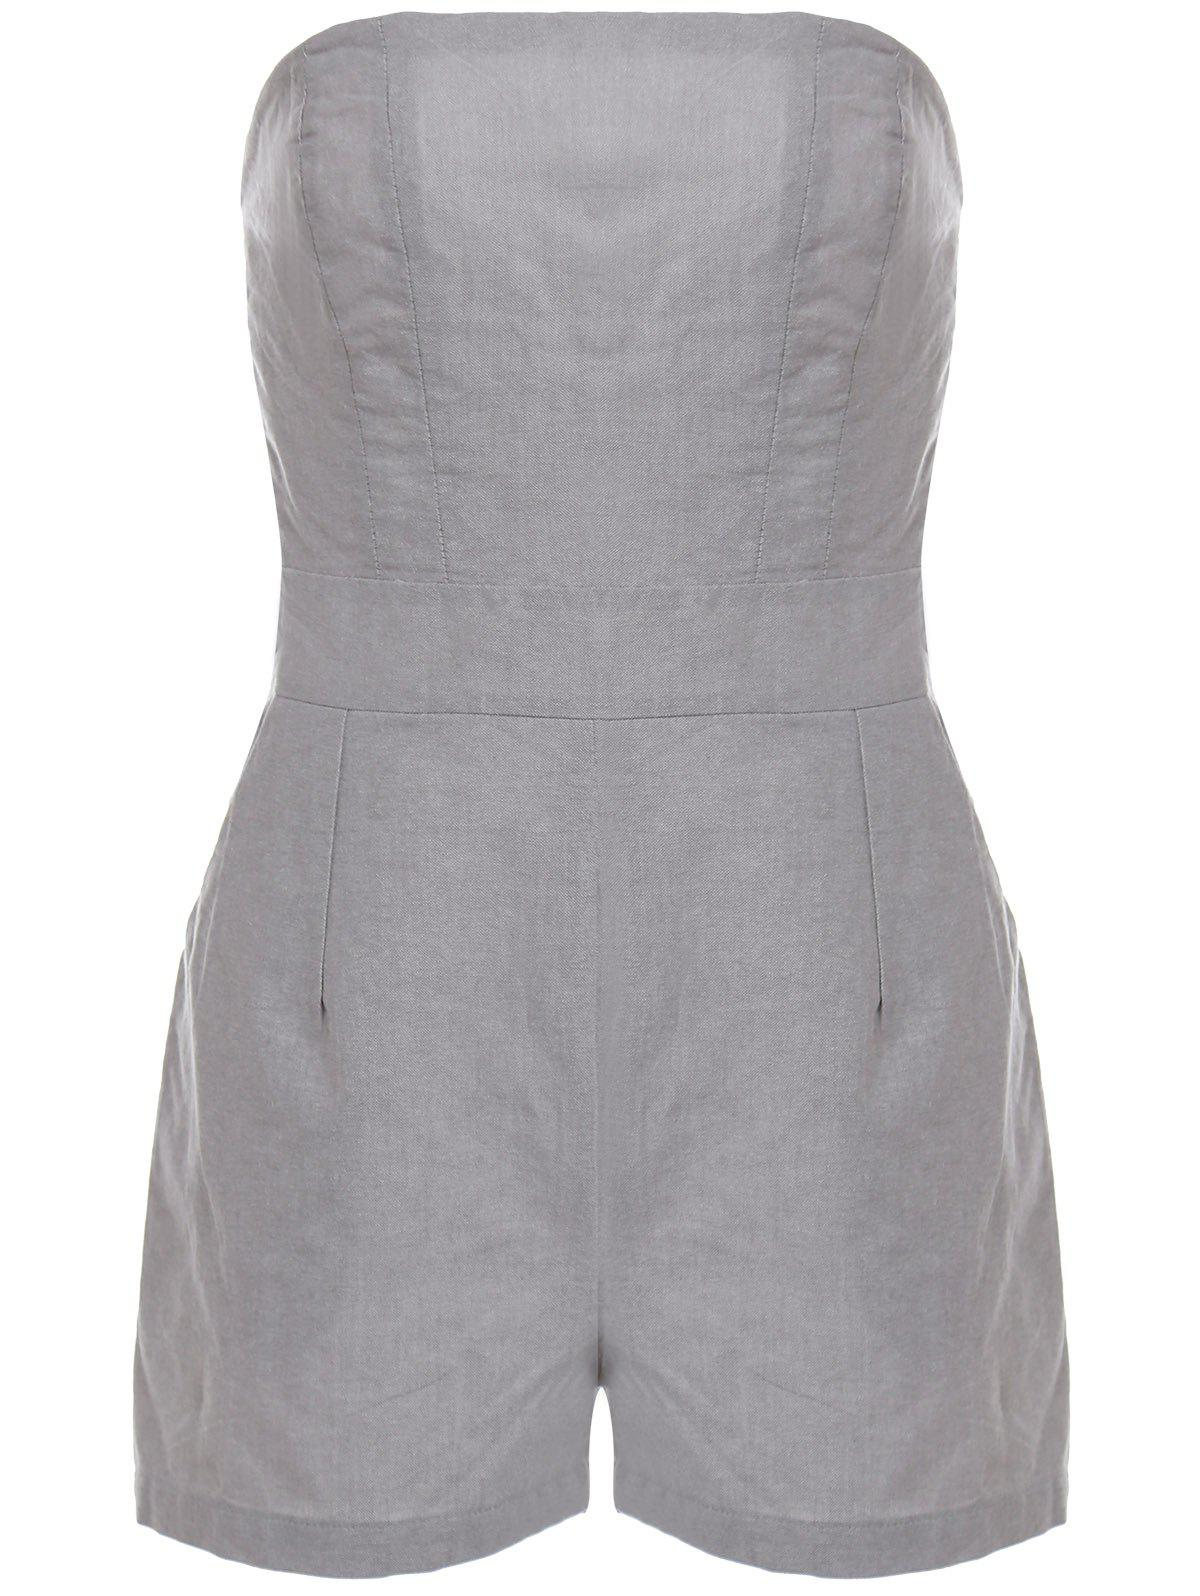 Stylish Strapless Sleeveless Solid Color Pocket Women's Playsuit - GRAY XL